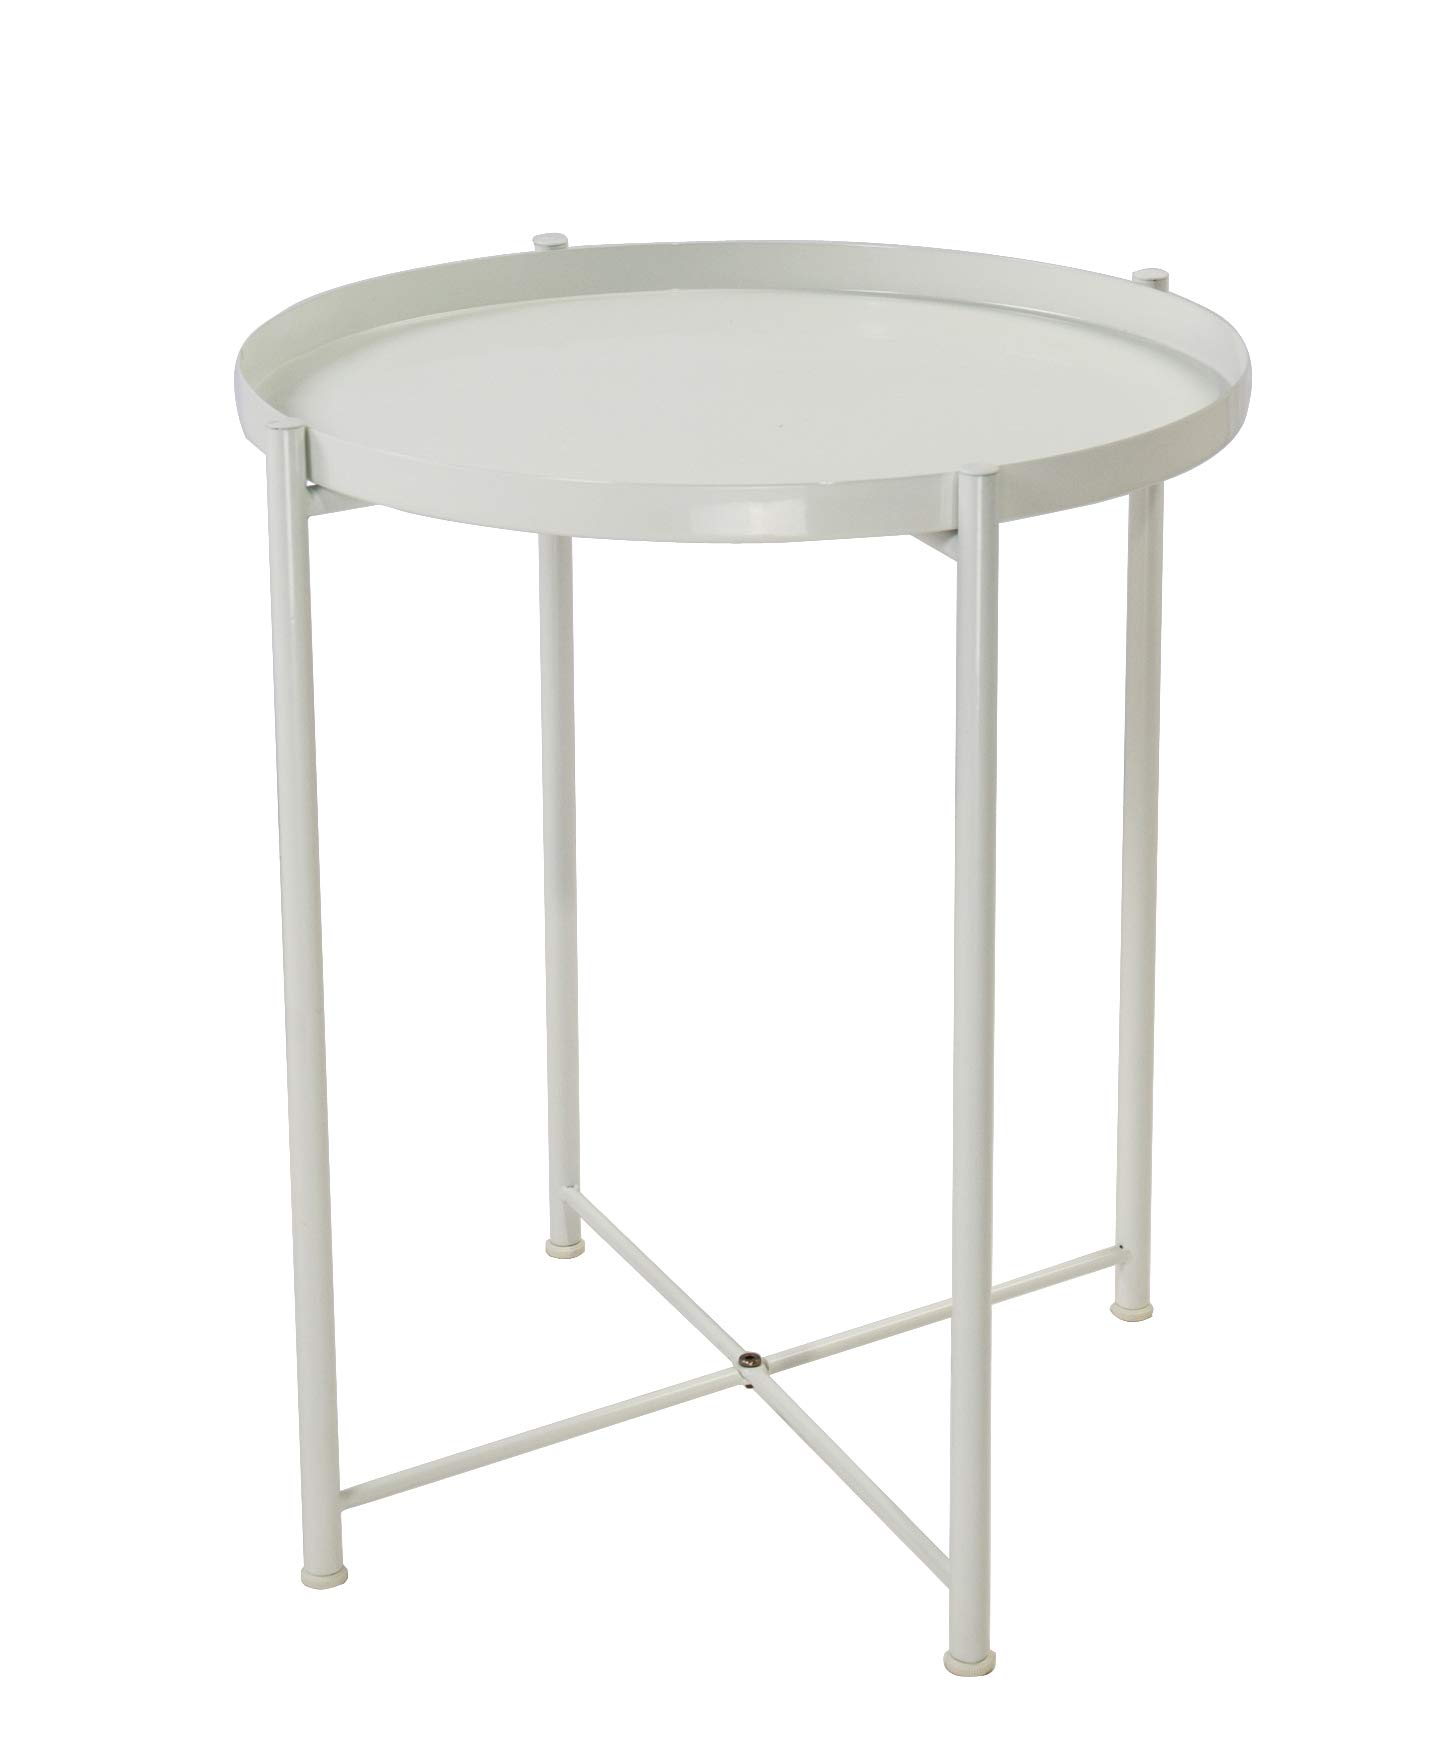 Tray Metal End Table Side Table Round Tray Removable Tray Outdoor & Indoor Drink Snack Coffee Table Telephone Table